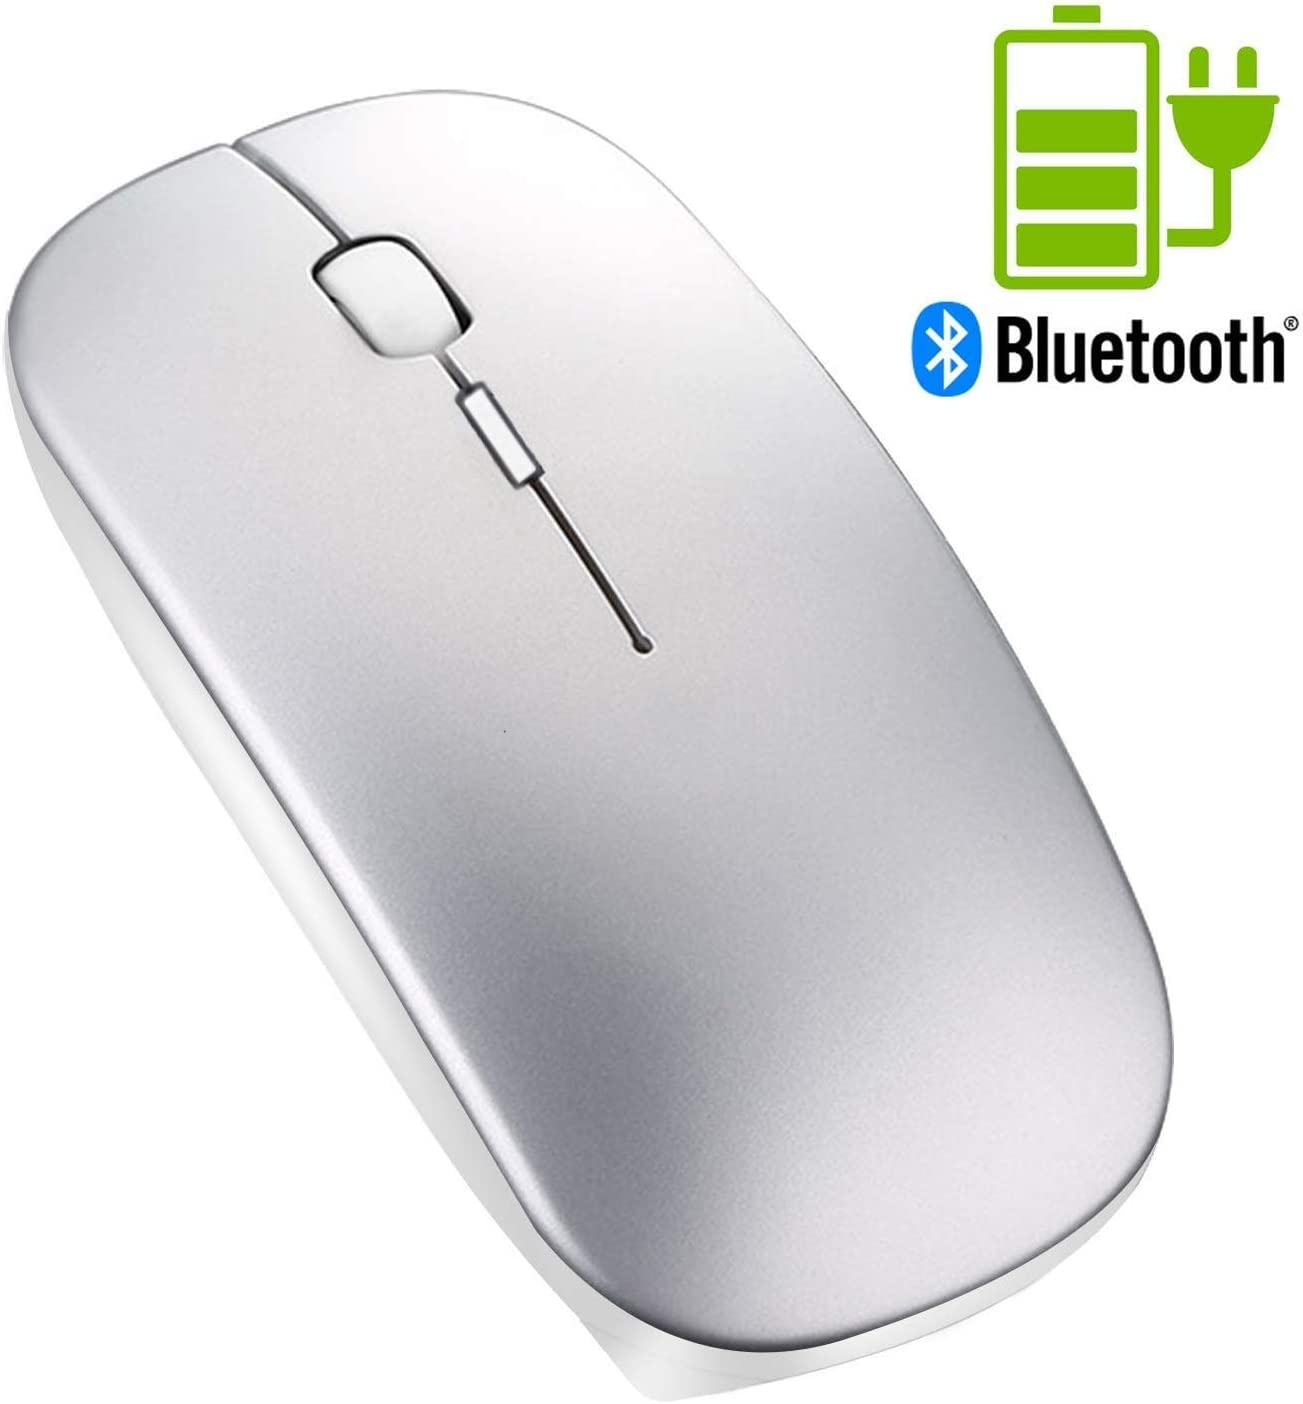 Ratón Bluetooth sin Receptor - Tsmine Ratón Inalámbrico Recargable con Clique Silencioso, Bluetooth Wireless Mouse Ratón Óptico para Macbook pro, Ordenador, Computadora Portátil, Tableta